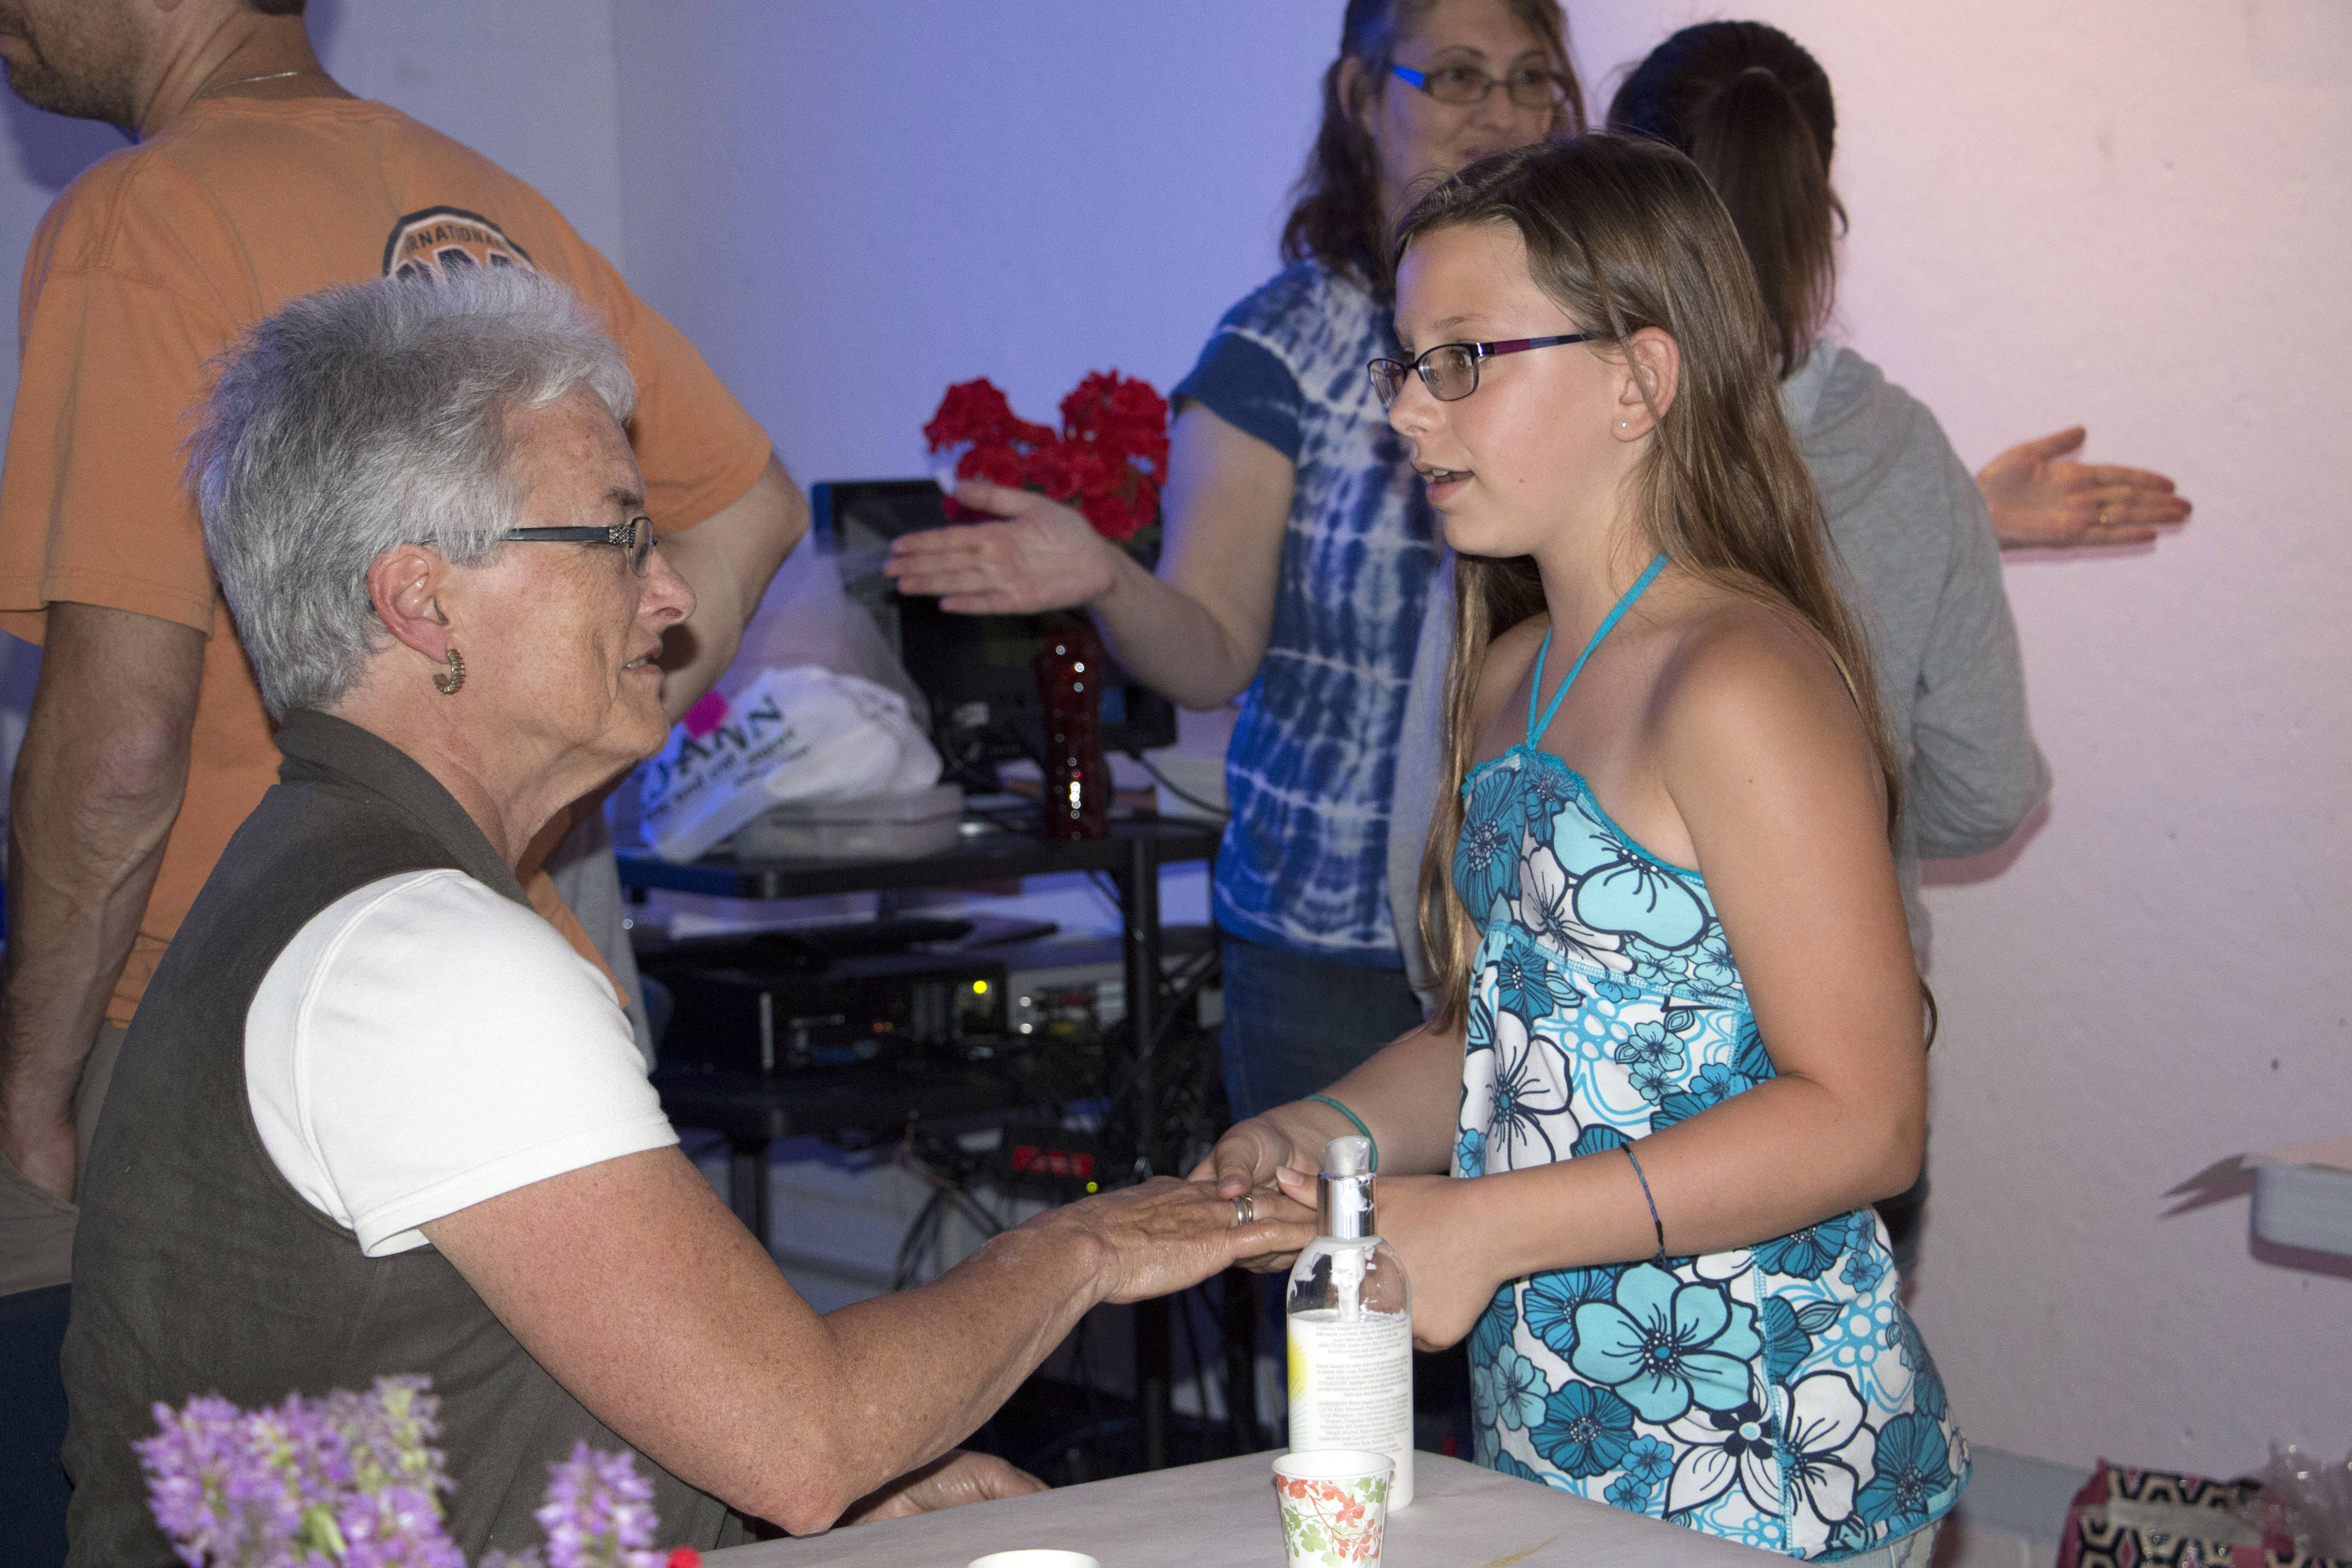 Ella Krotz, 10, of Cary, talks with her grandmother, Candace Sinclair of Cary, as she massages her hand during her Spa Science class where the students created the Ultimate Spa Experience for family members and guests. The class is part of the Kids and College Summer program at McHenry County College.